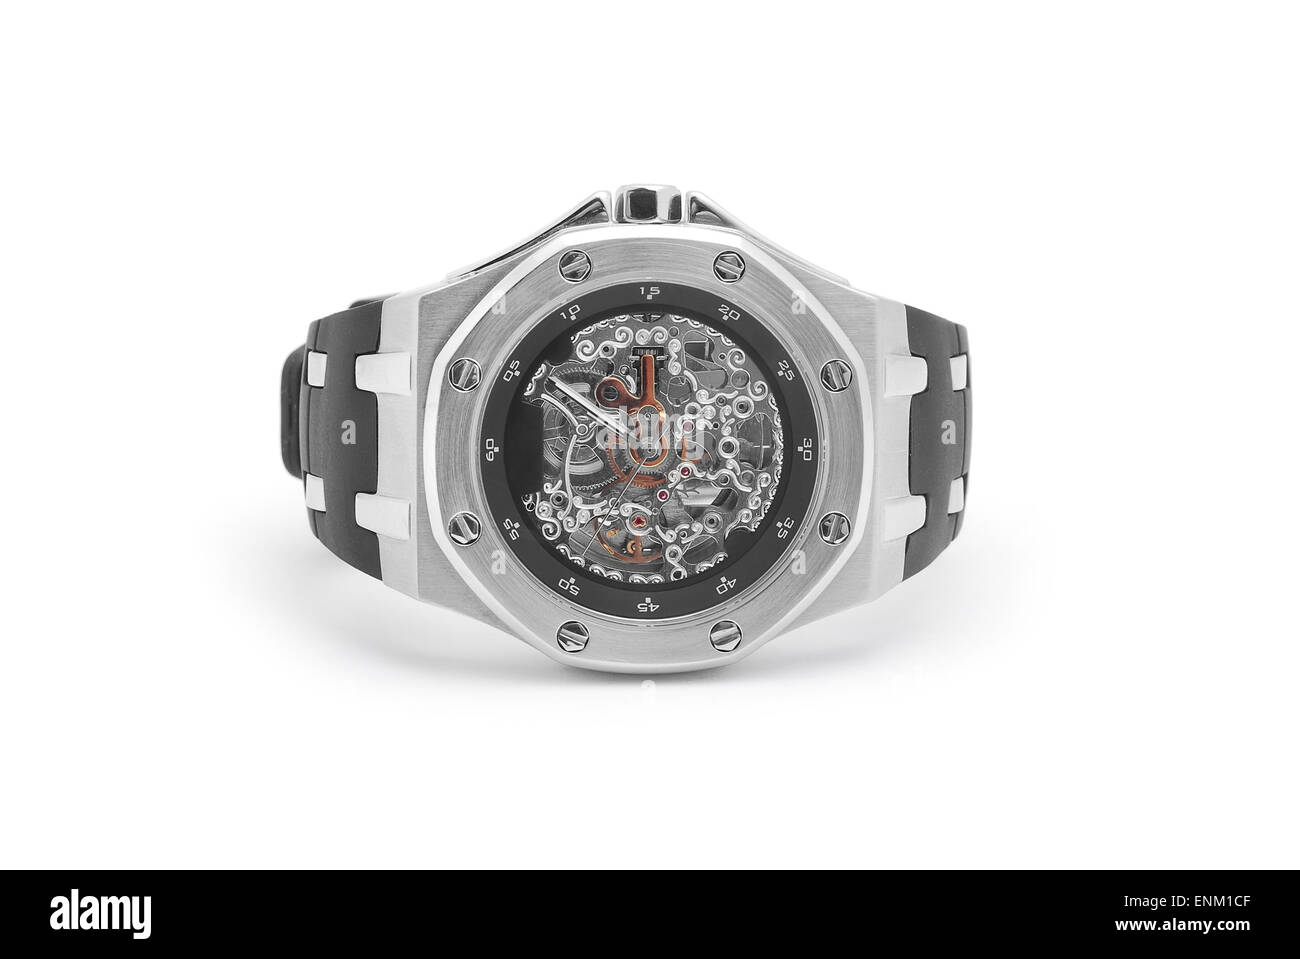 wrist watch with transparent dial - Stock Image